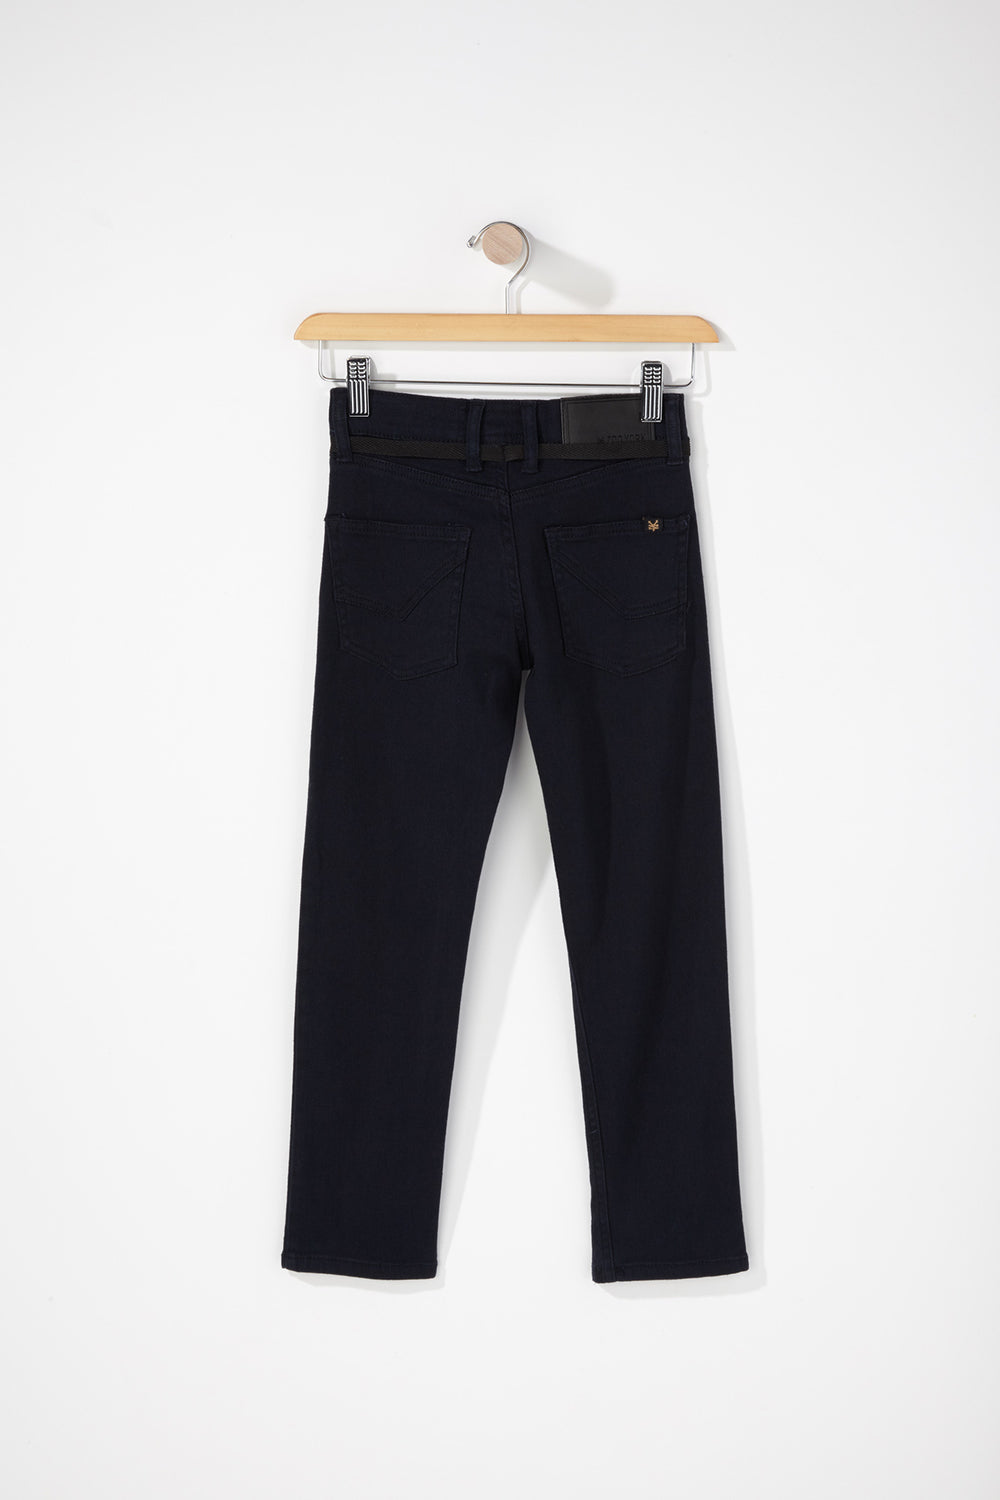 Zoo York Youth Stretch Skinny Jeans Navy